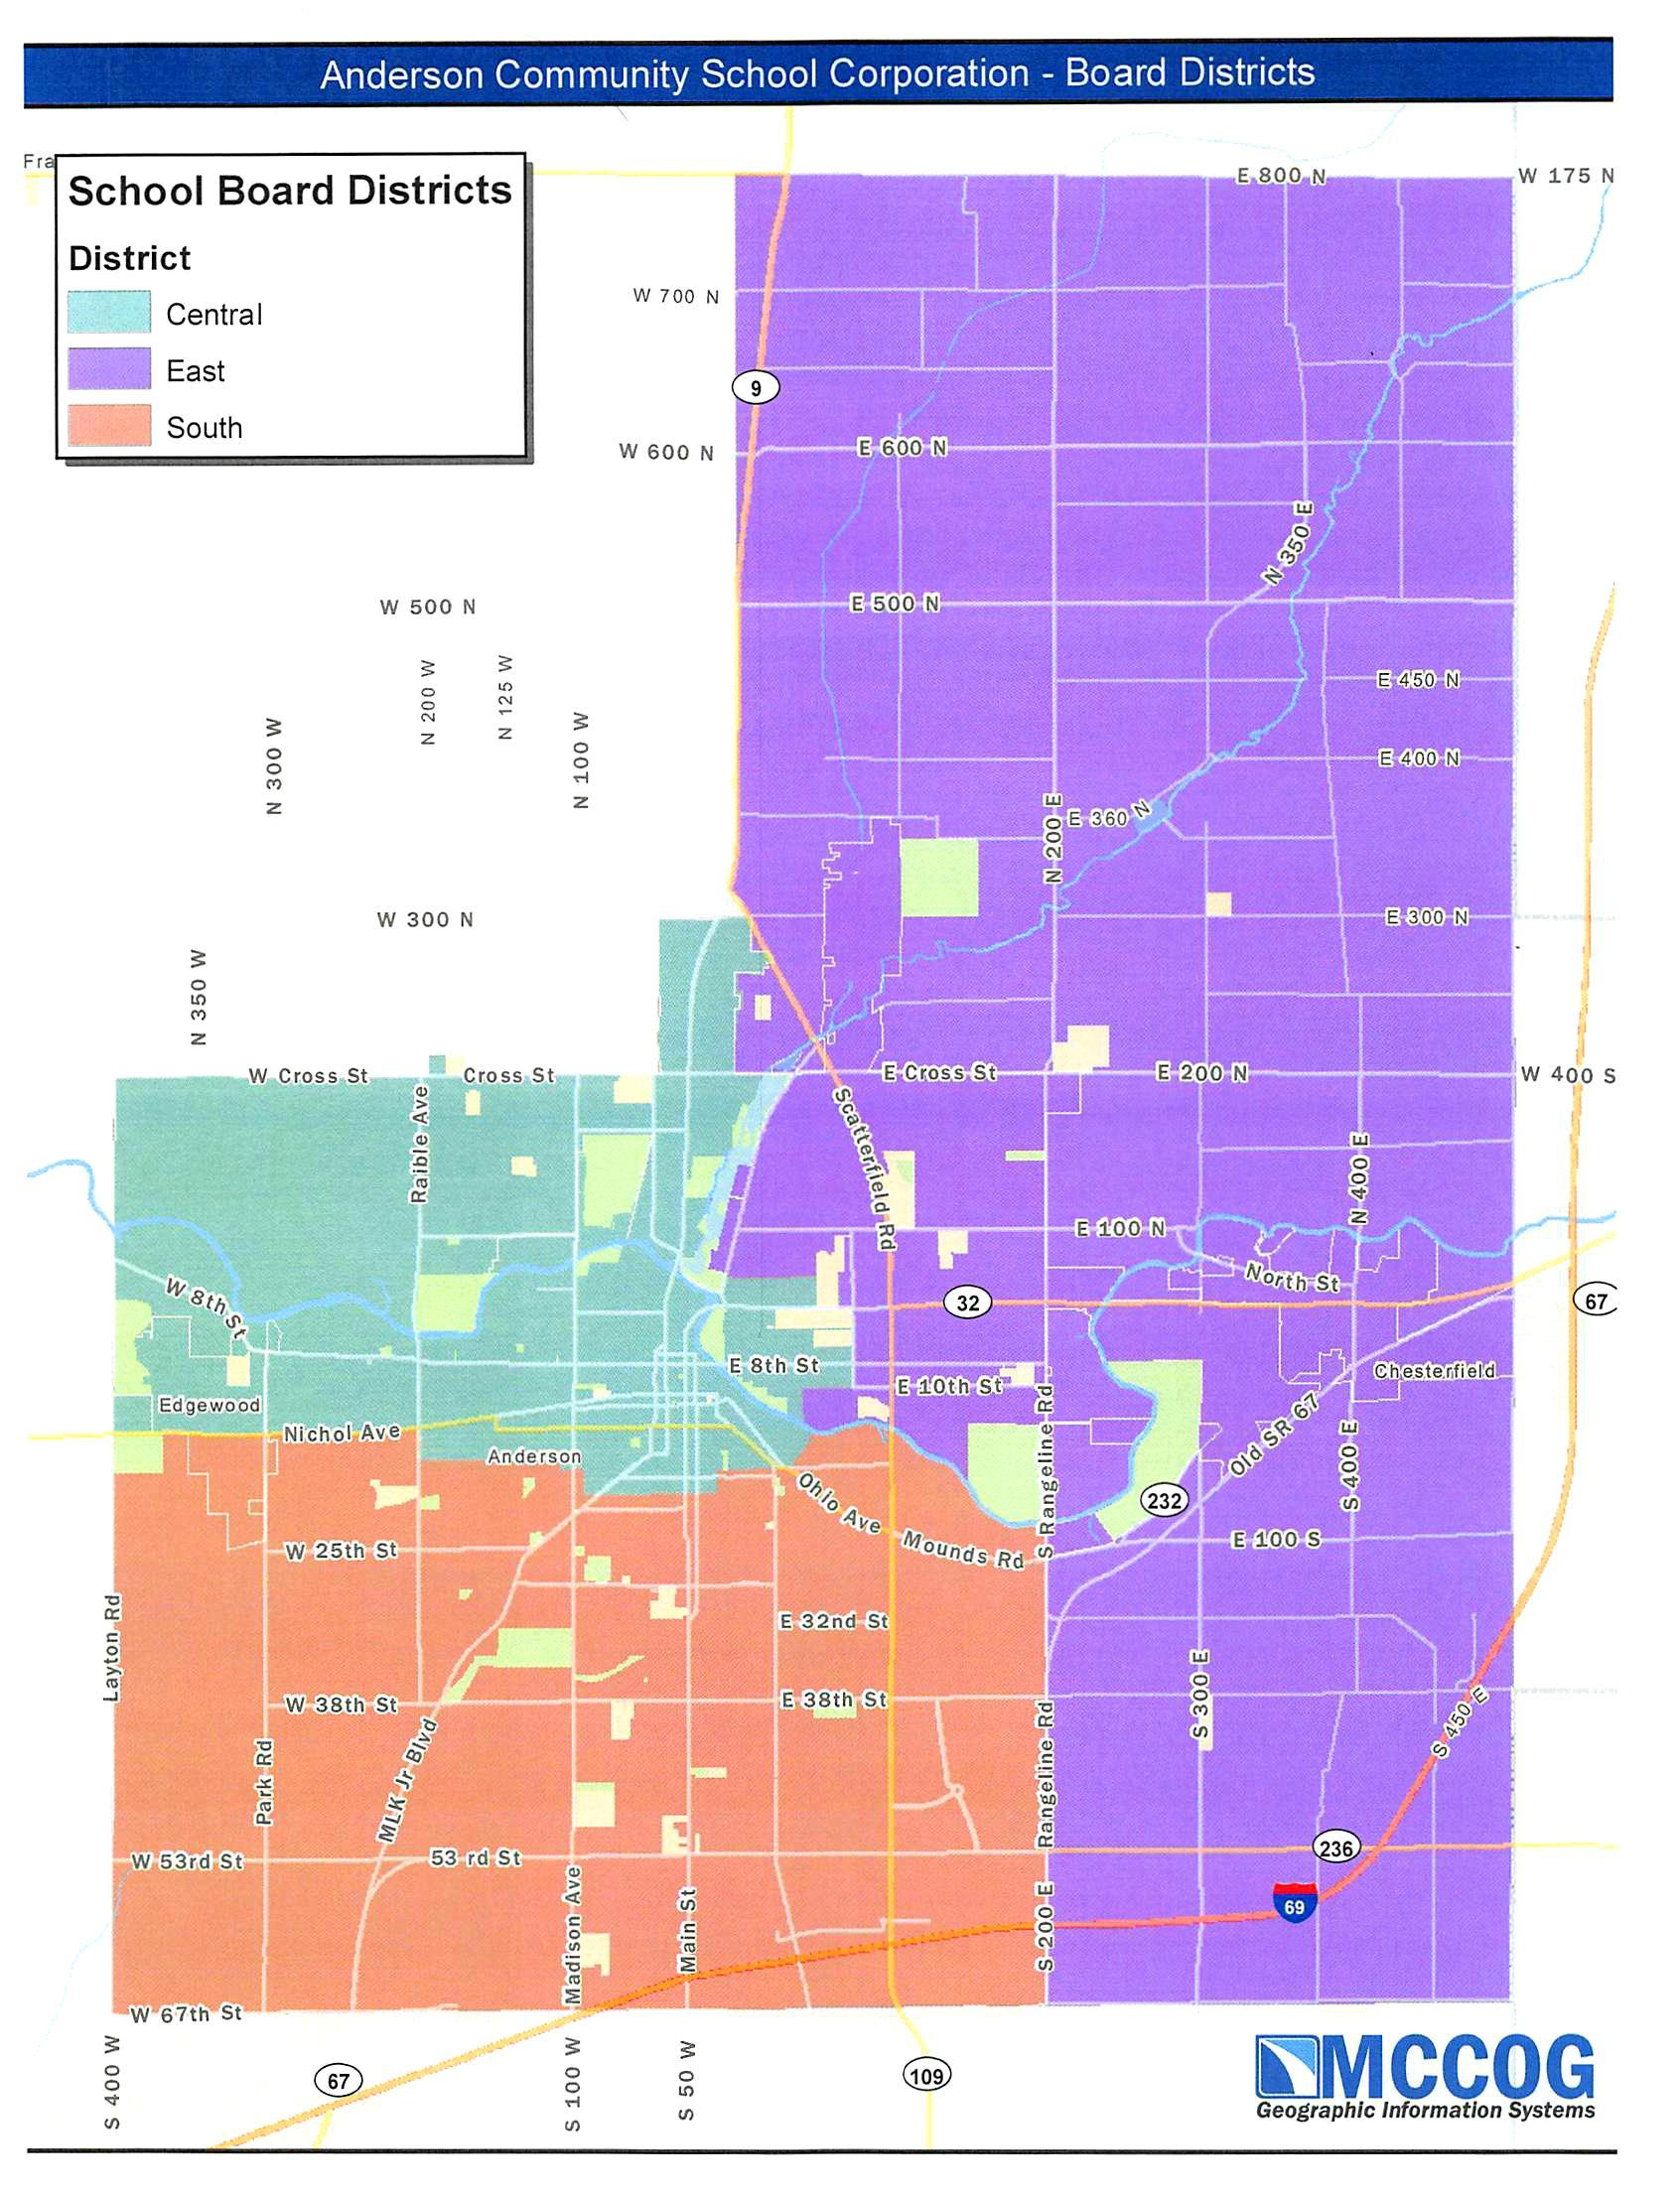 ACSC School Board Districts map